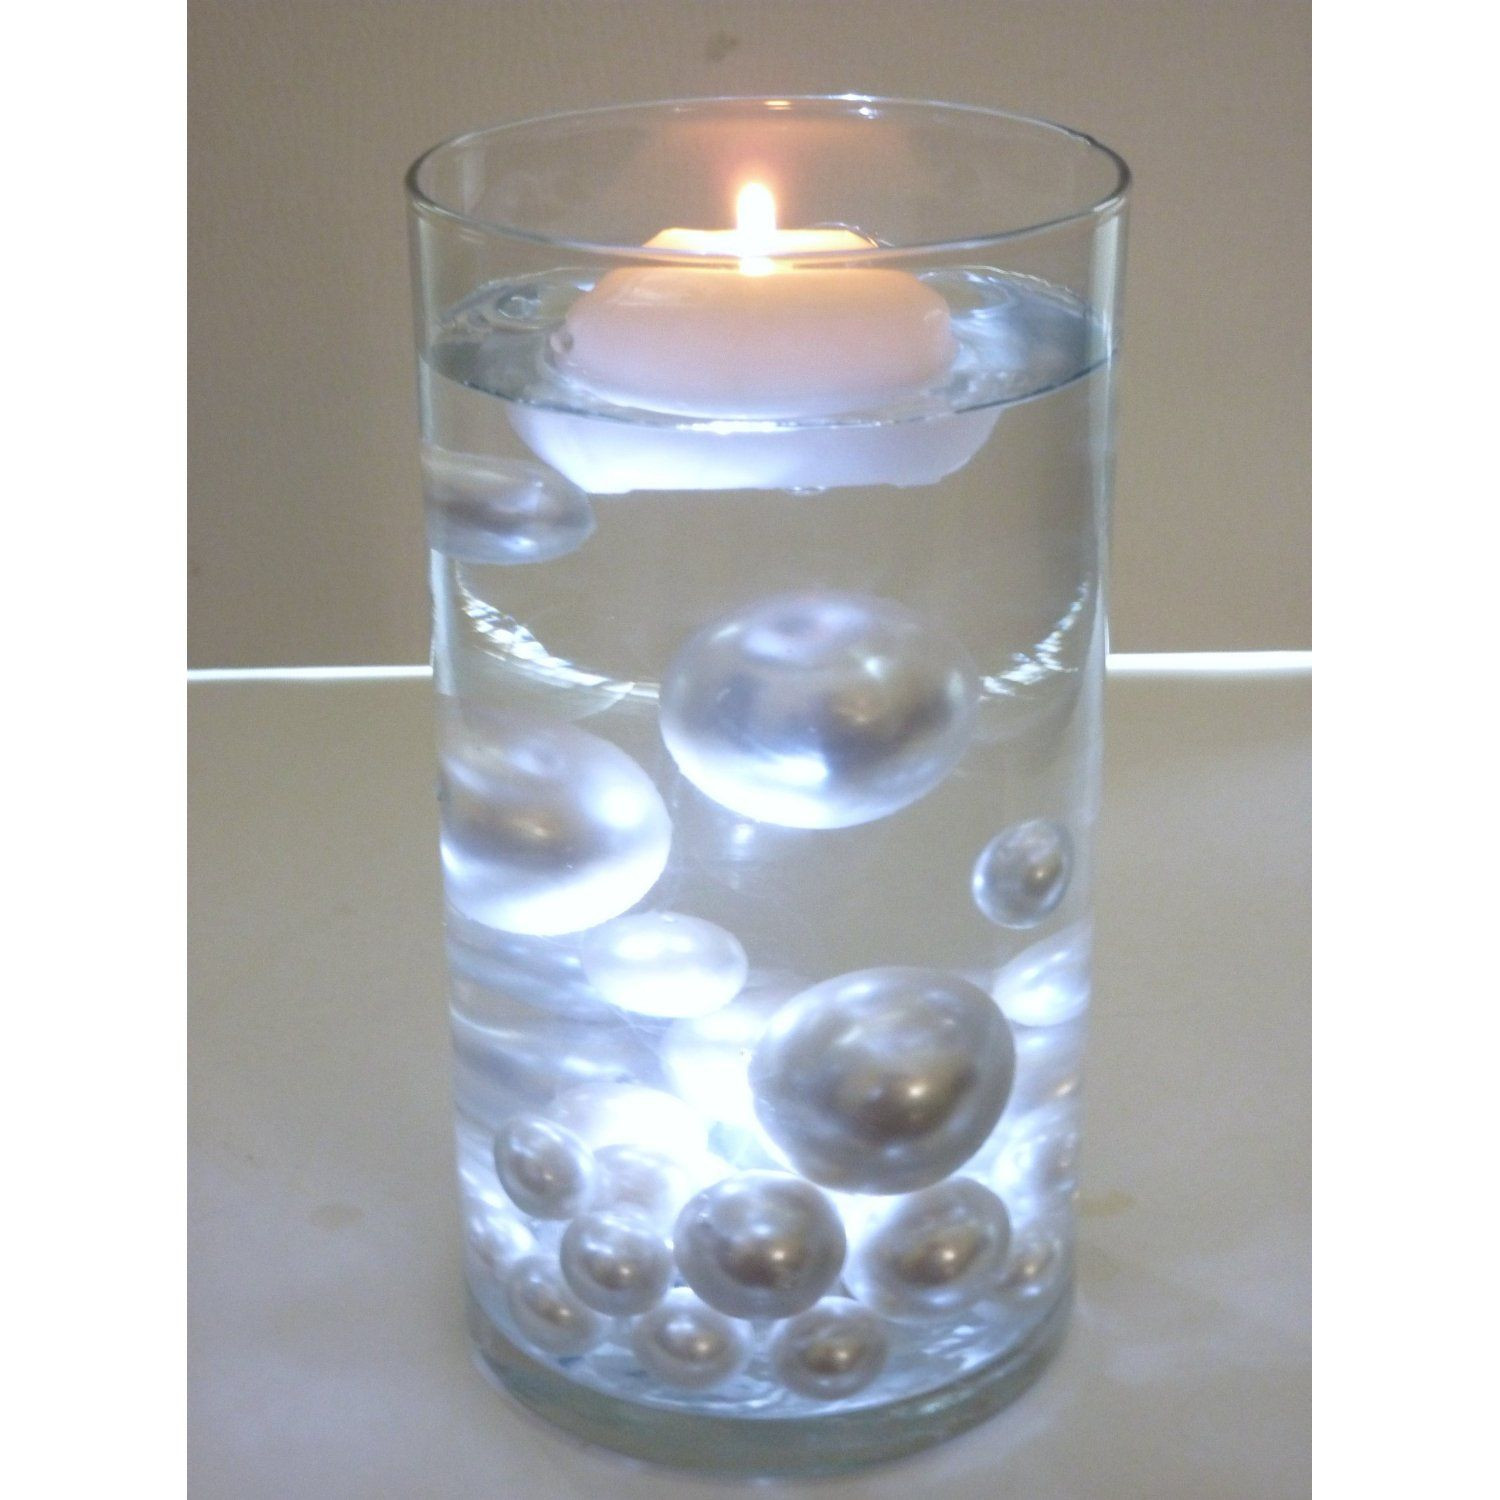 floating vase fillers of clear gel that makes it look like the pearls are floating im sure throughout clear gel that makes it look like the pearls are floating im sure we can figure something out along these lines